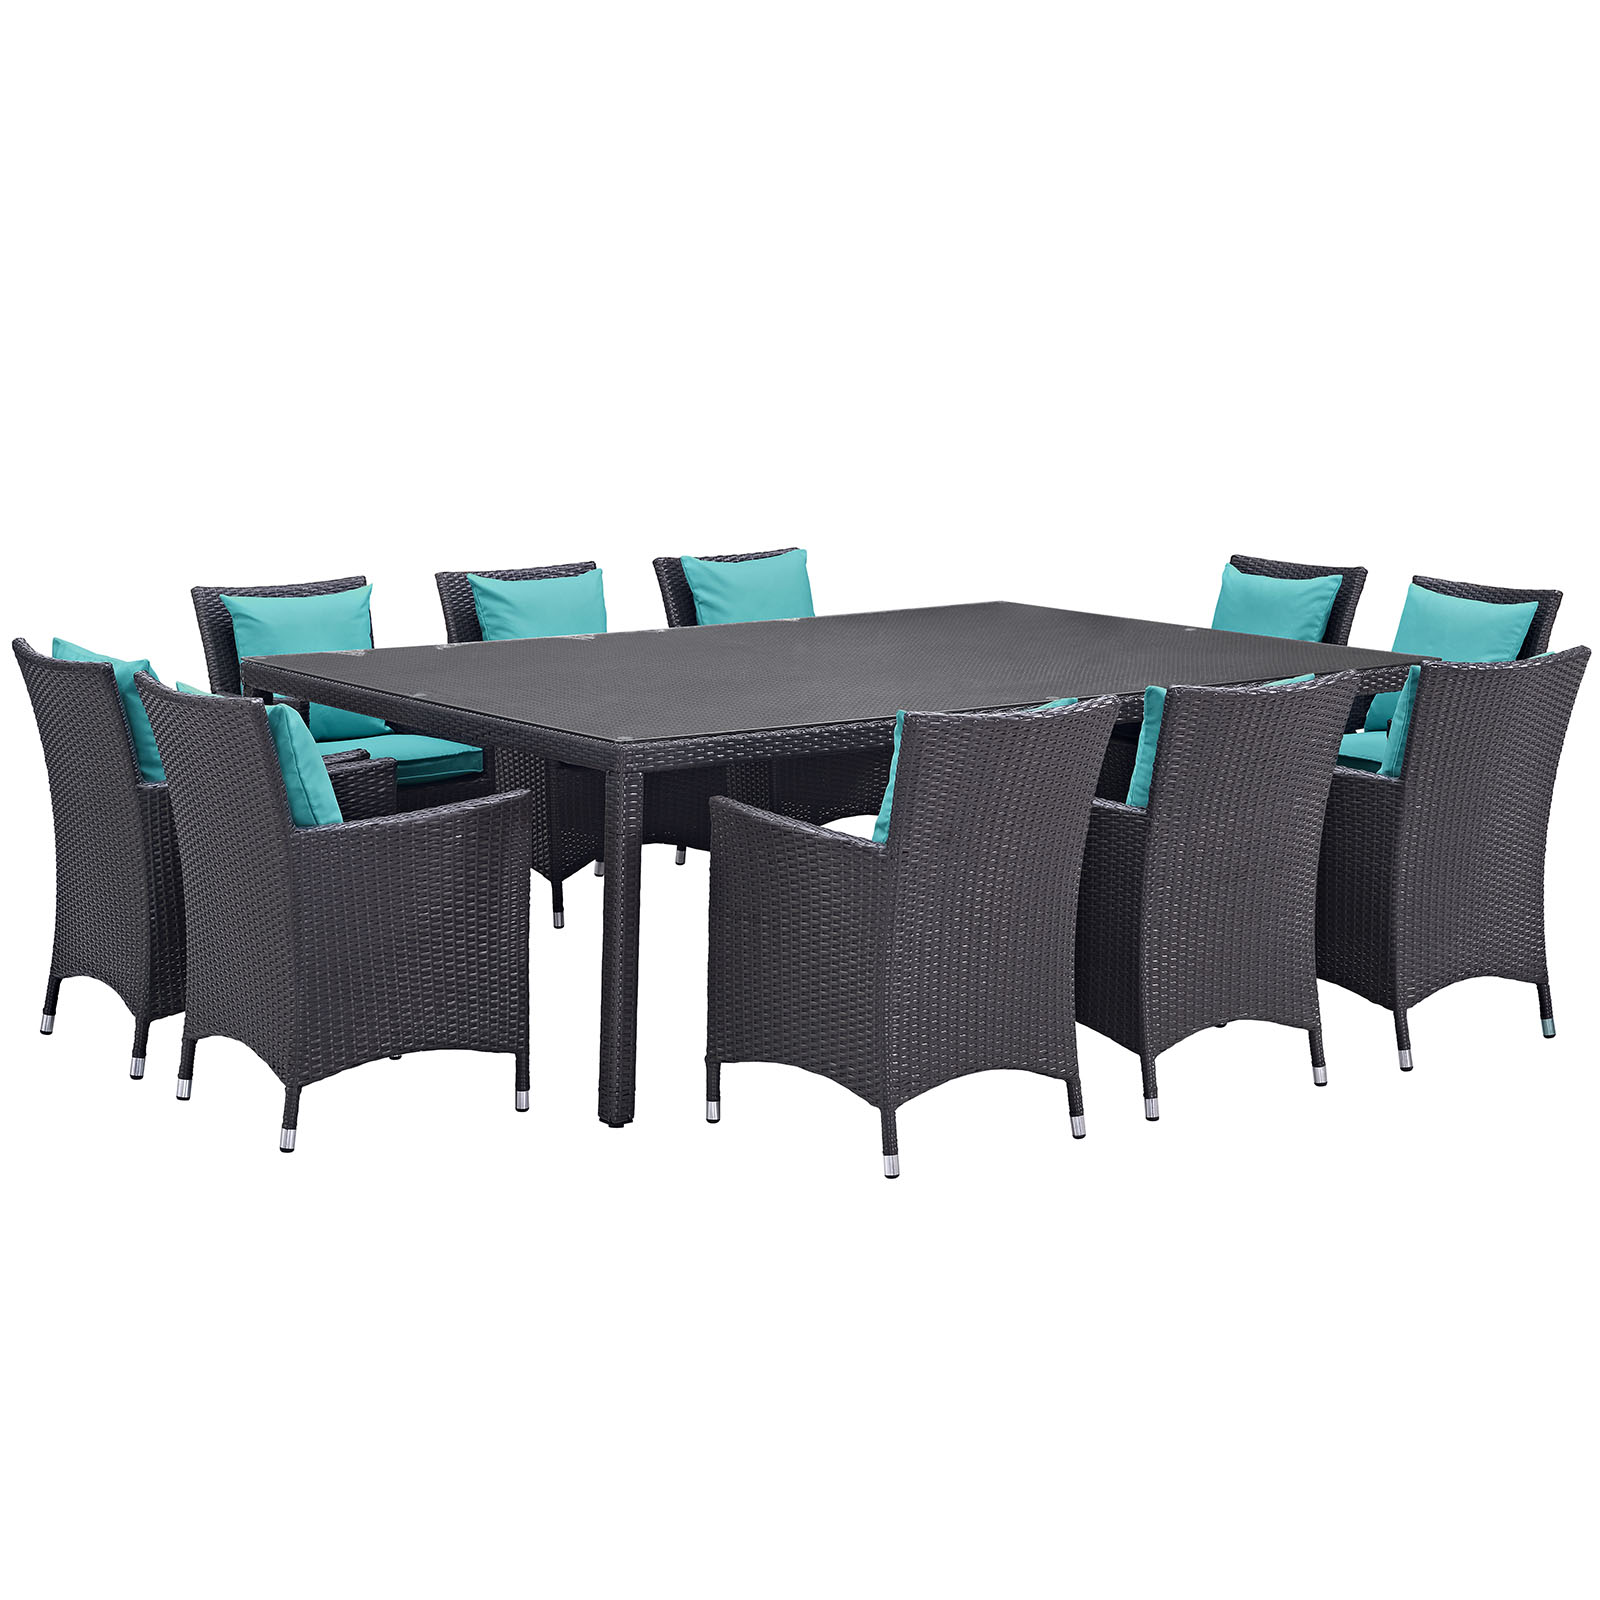 Modern Contemporary Urban Design Outdoor Patio Balcony Eleven PCS Dining Chairs and Table Set, Blue, Rattan